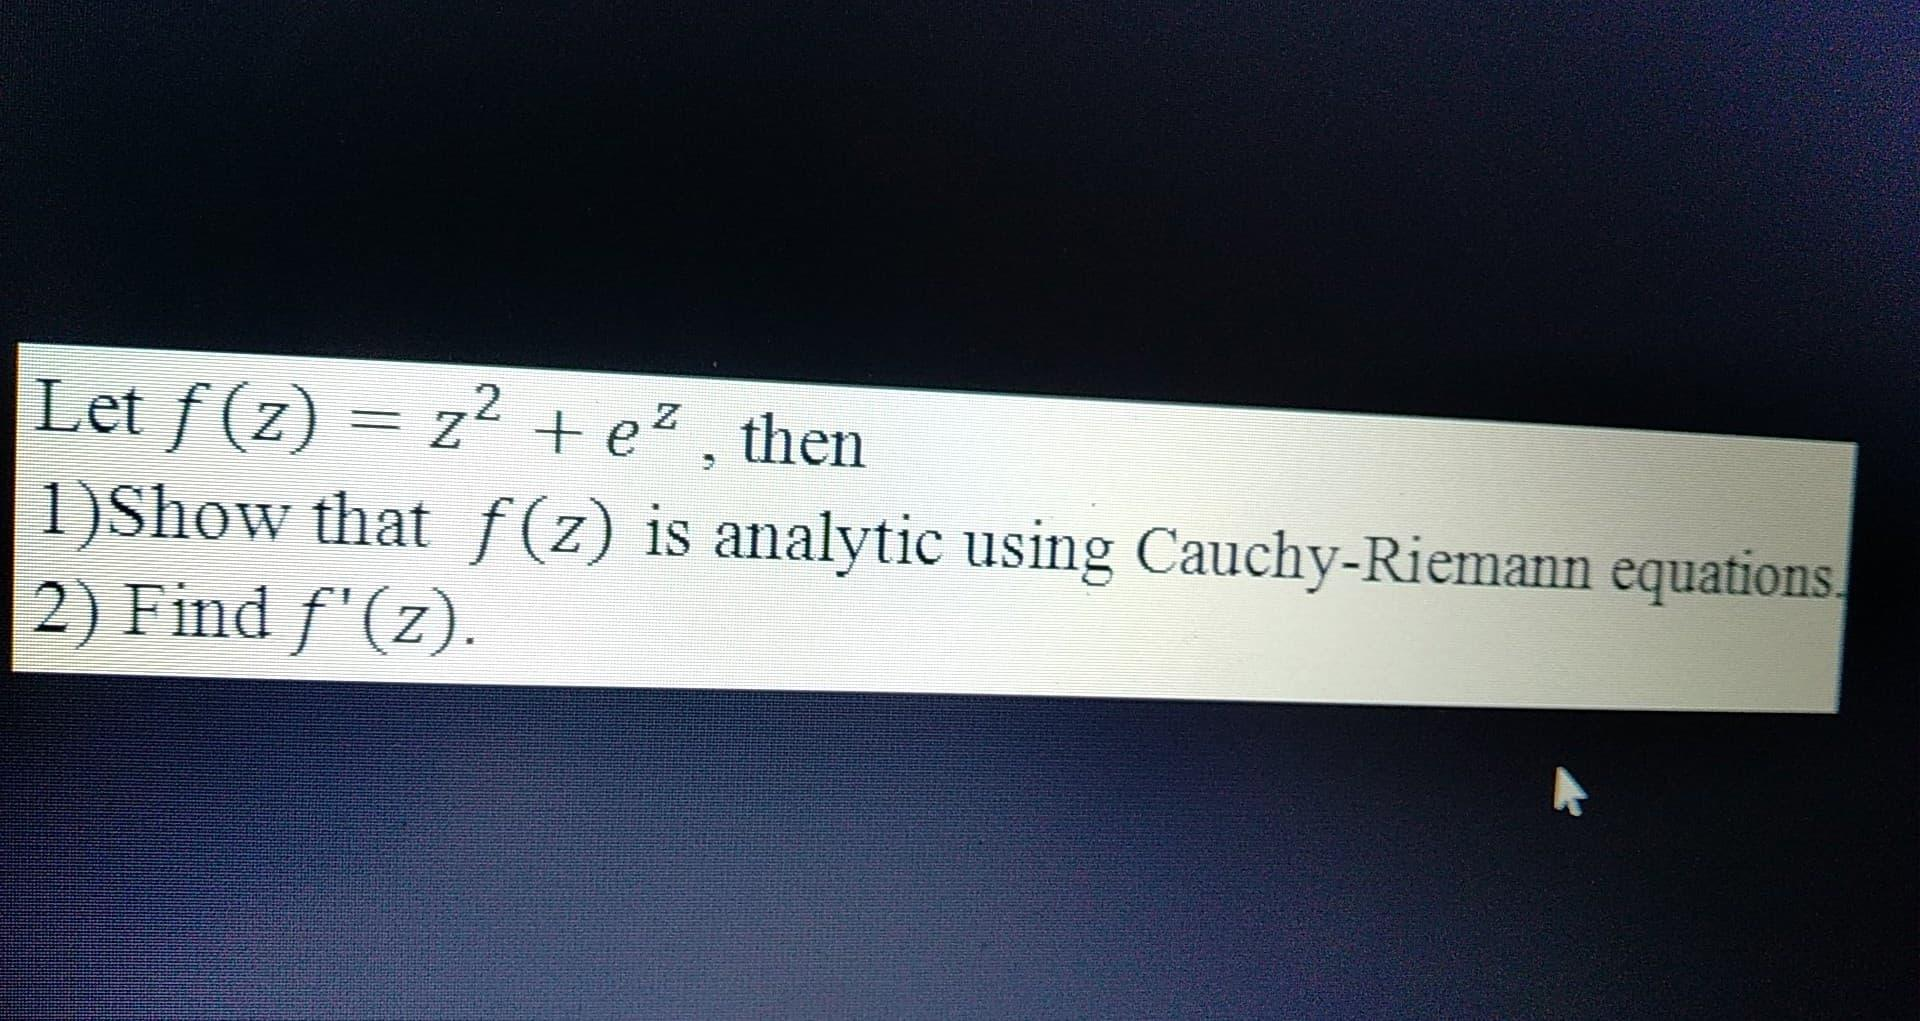 Let f (z) = z2 +e?, then 1)Show that f(z) is analytic using Cauchy-Riemann equations 2) Find f(z)